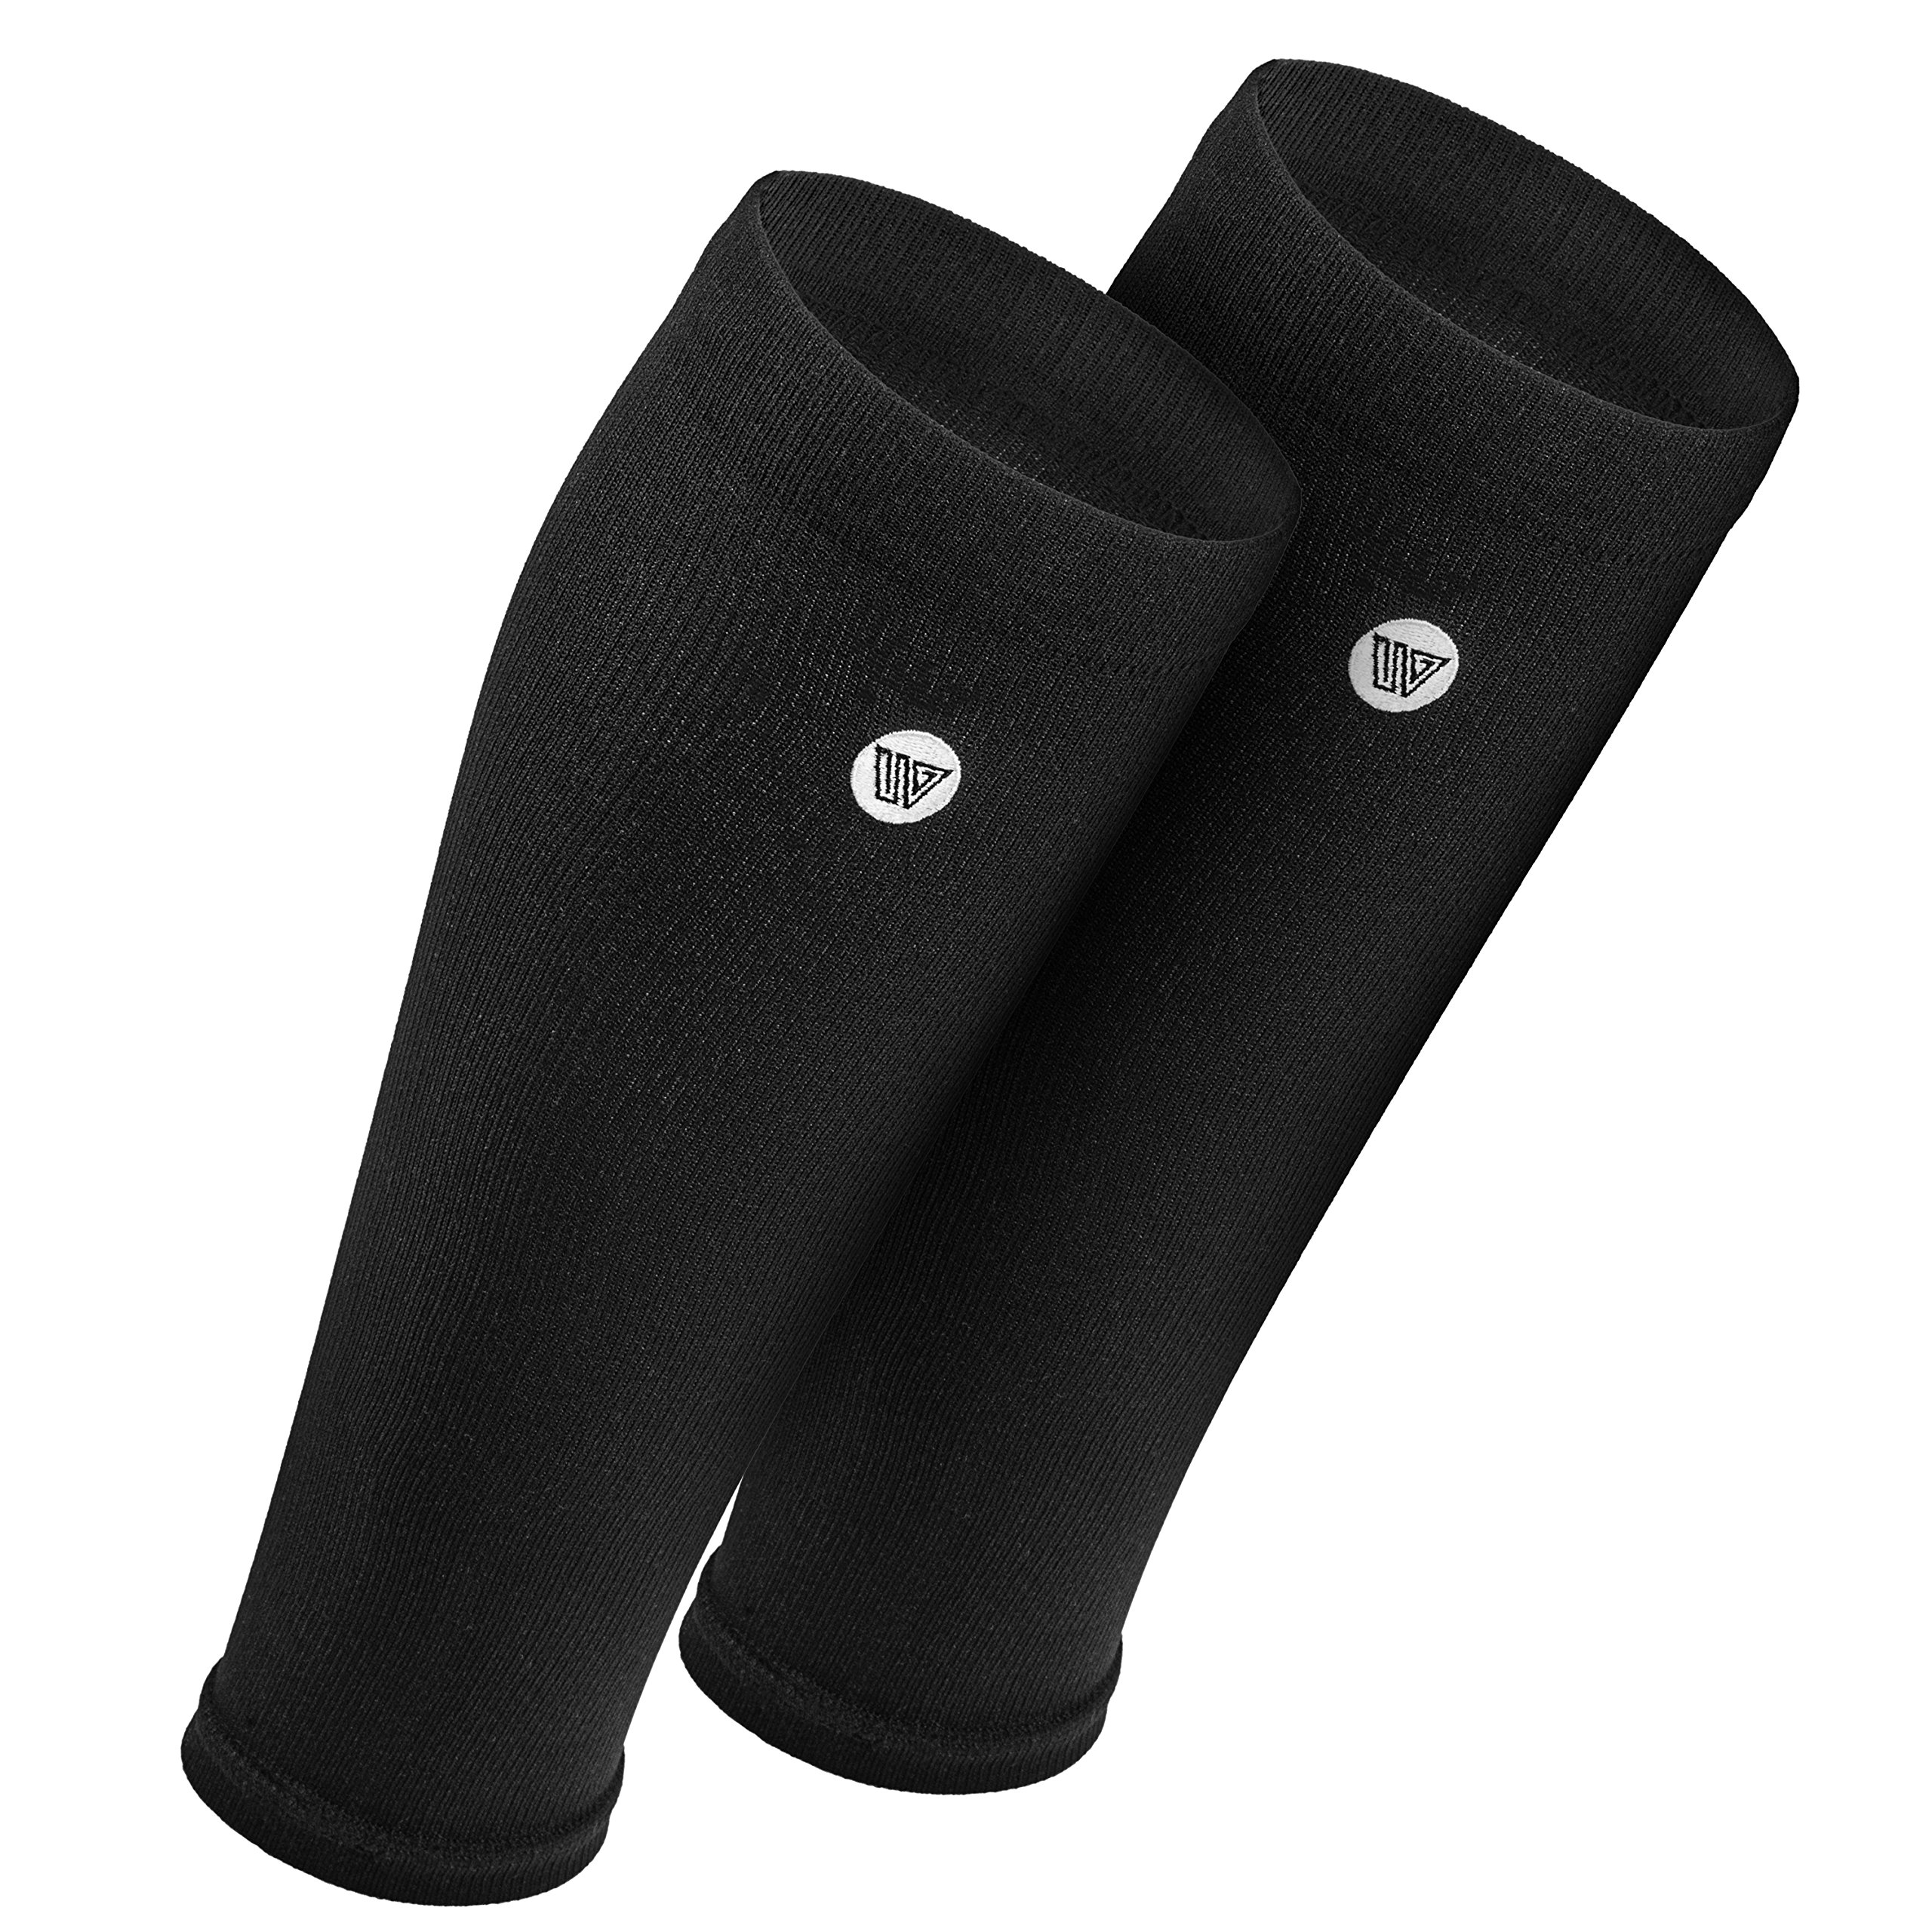 Wanderlust Calf Compression Sleeves for Men & Women - Leg and Calves Footless Support Socks for Shin Splints, Running, Basketball, Football - Best for Circulation & Recovery!